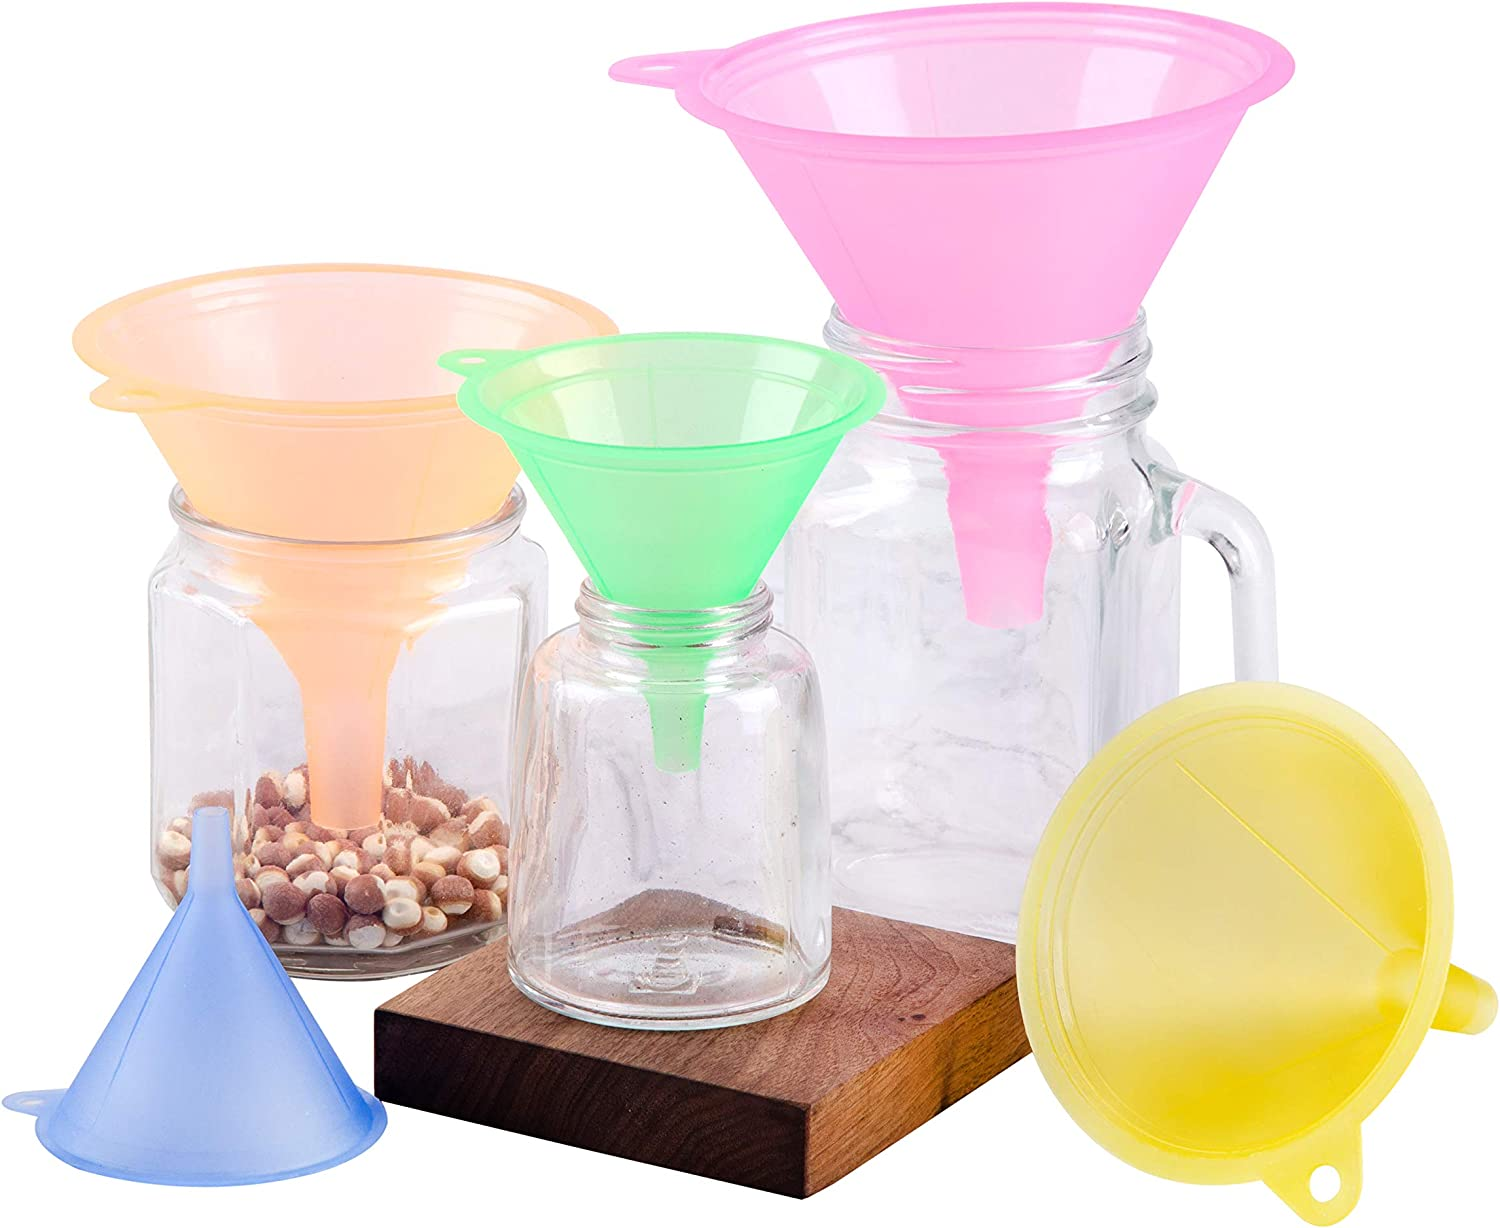 5 Sizes Mini Plastic Funnels Set with Narrow Spout, Candy Colors Multi-Purpose Kitchen Home Tools for a Variety of bottles, Easy Smooth Transfer and Liquids Dry Goods